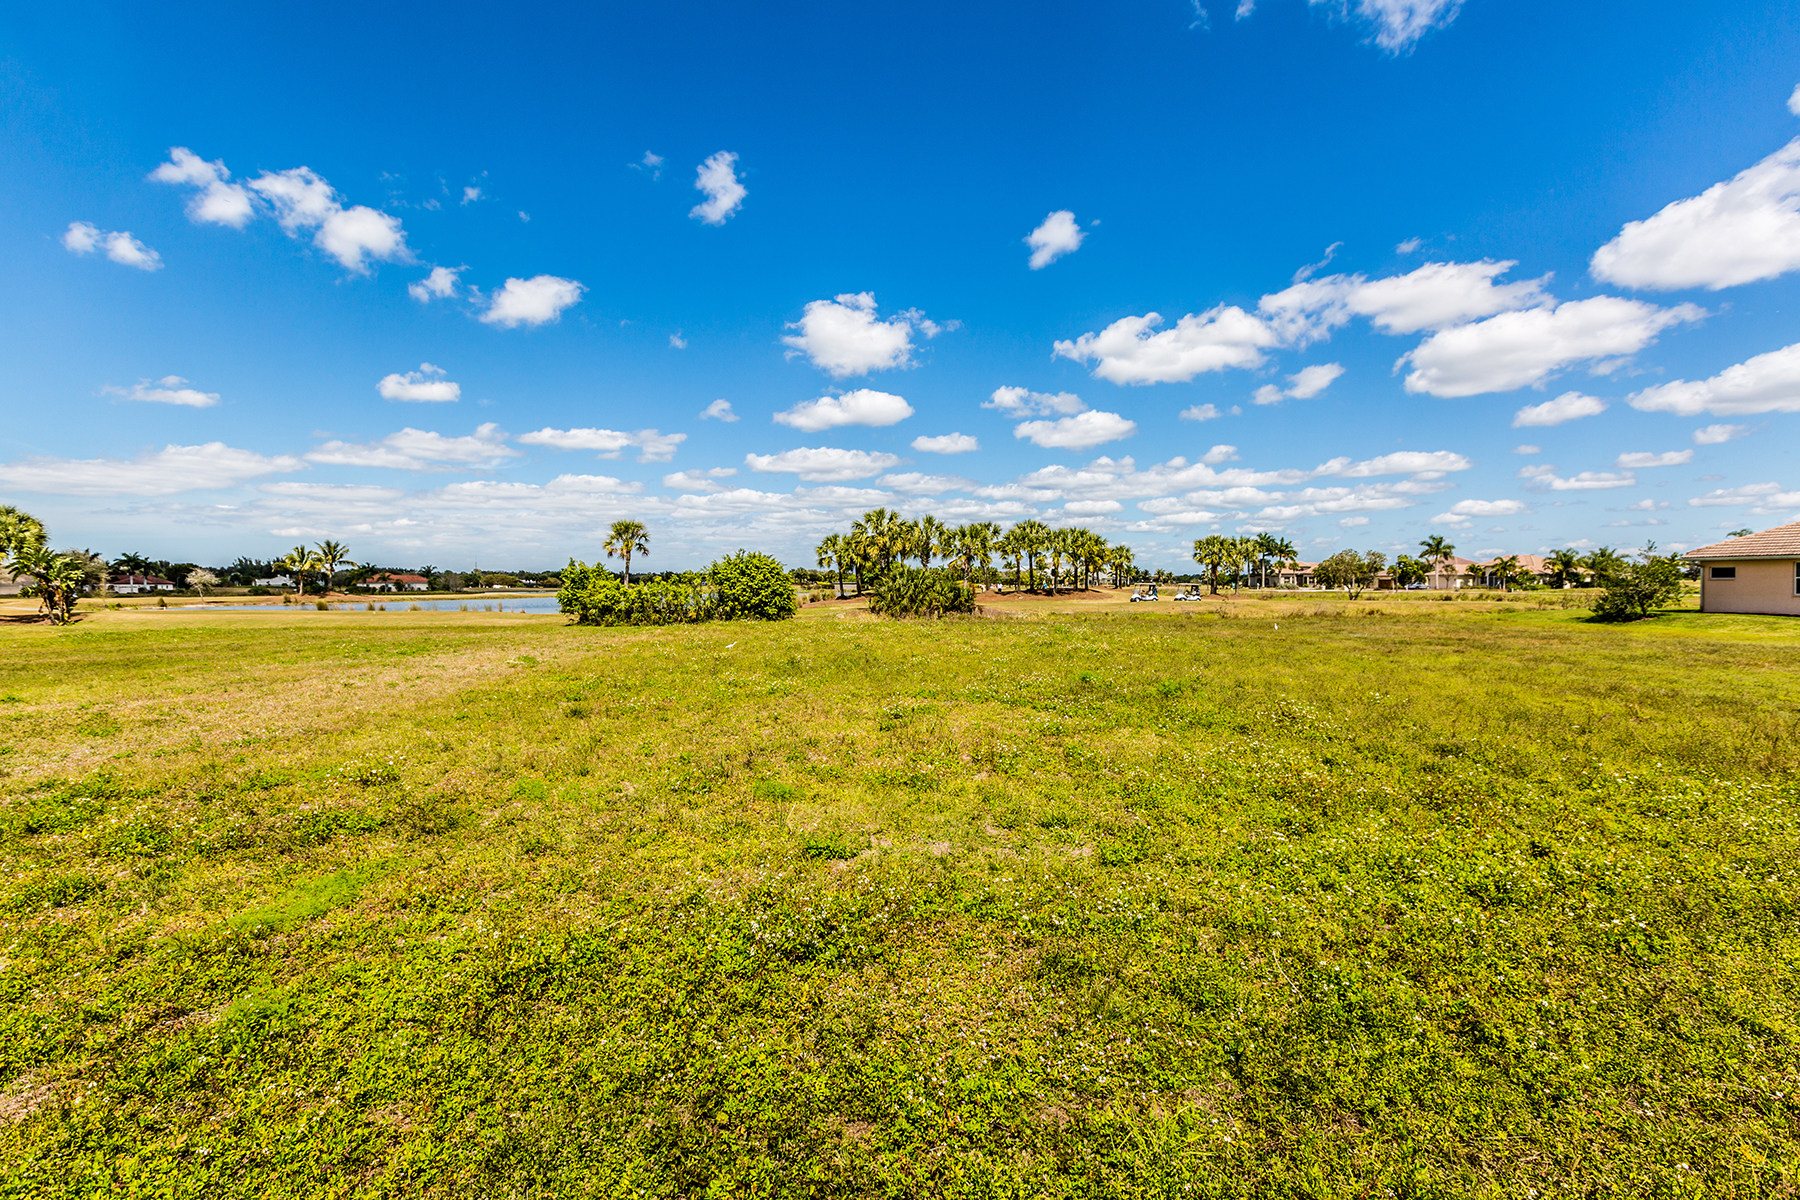 Land for Sale at NAPLES - ROYAL PALM GOLF ESTATES 18456 Royal Hammock Blvd Naples, Florida, 34114 United States